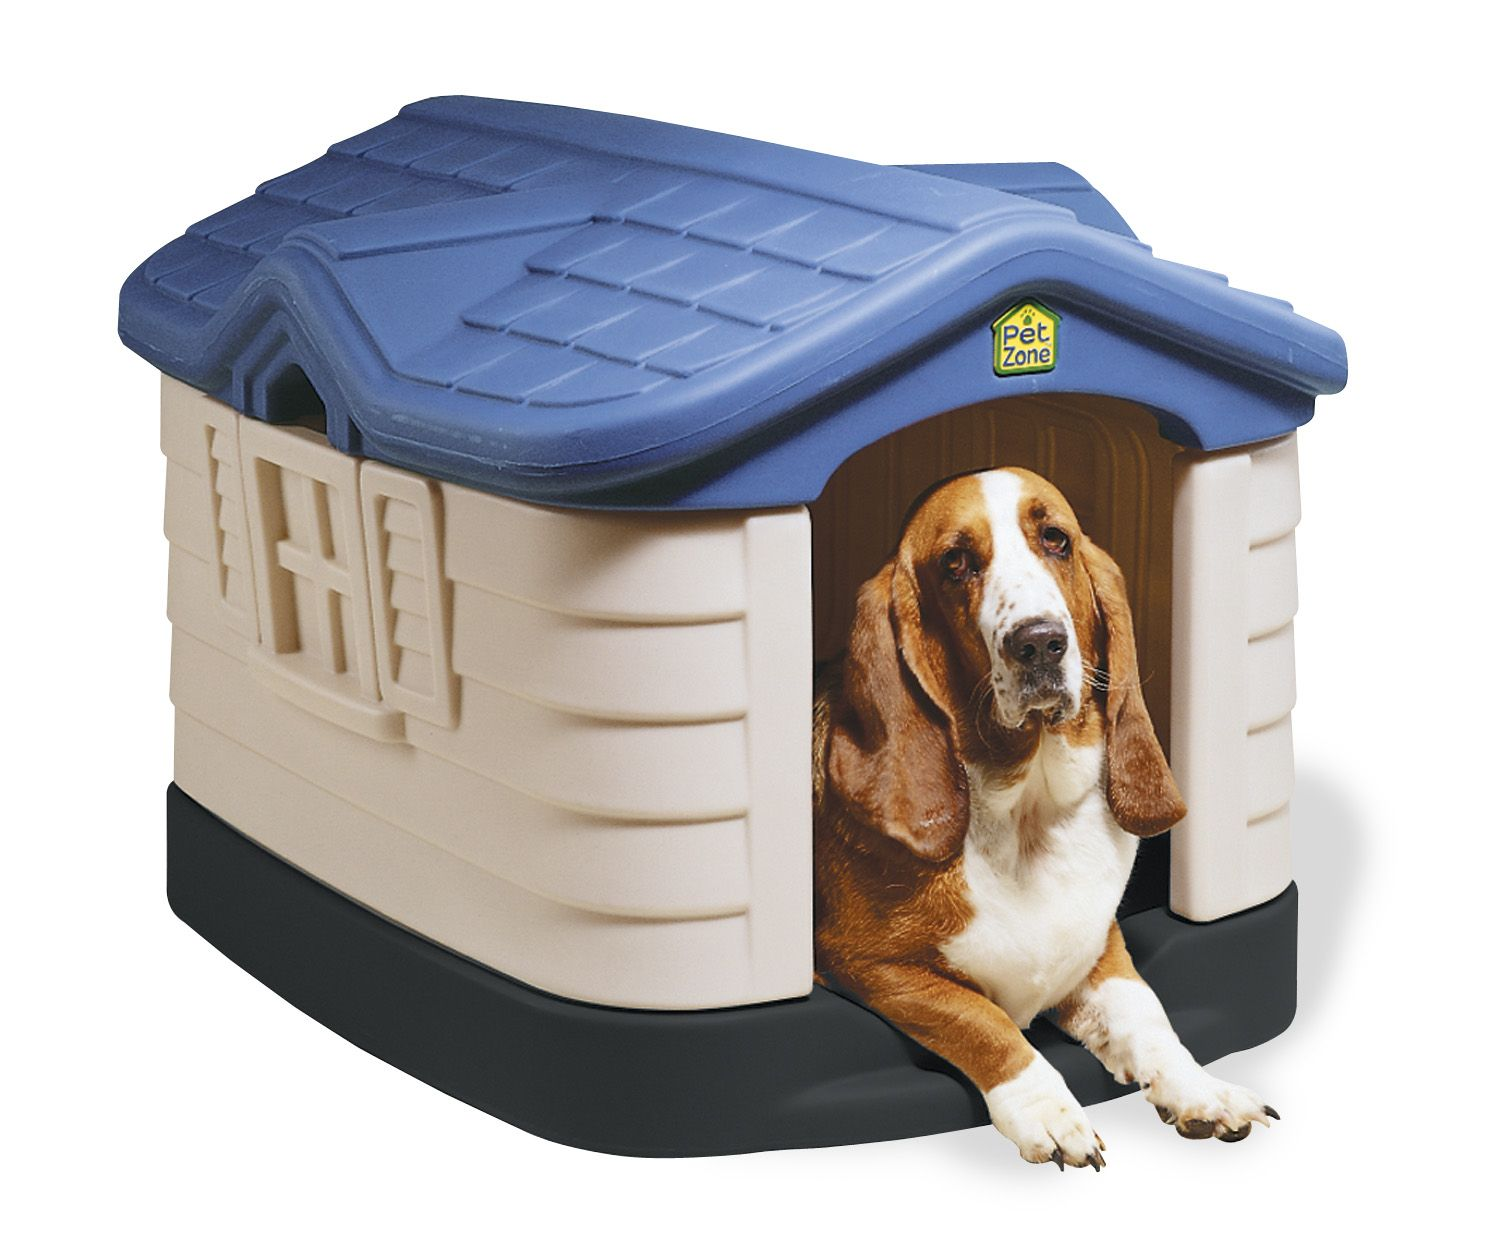 Secure Pets Is Pleased To Offer Affordable Insulated Heated And